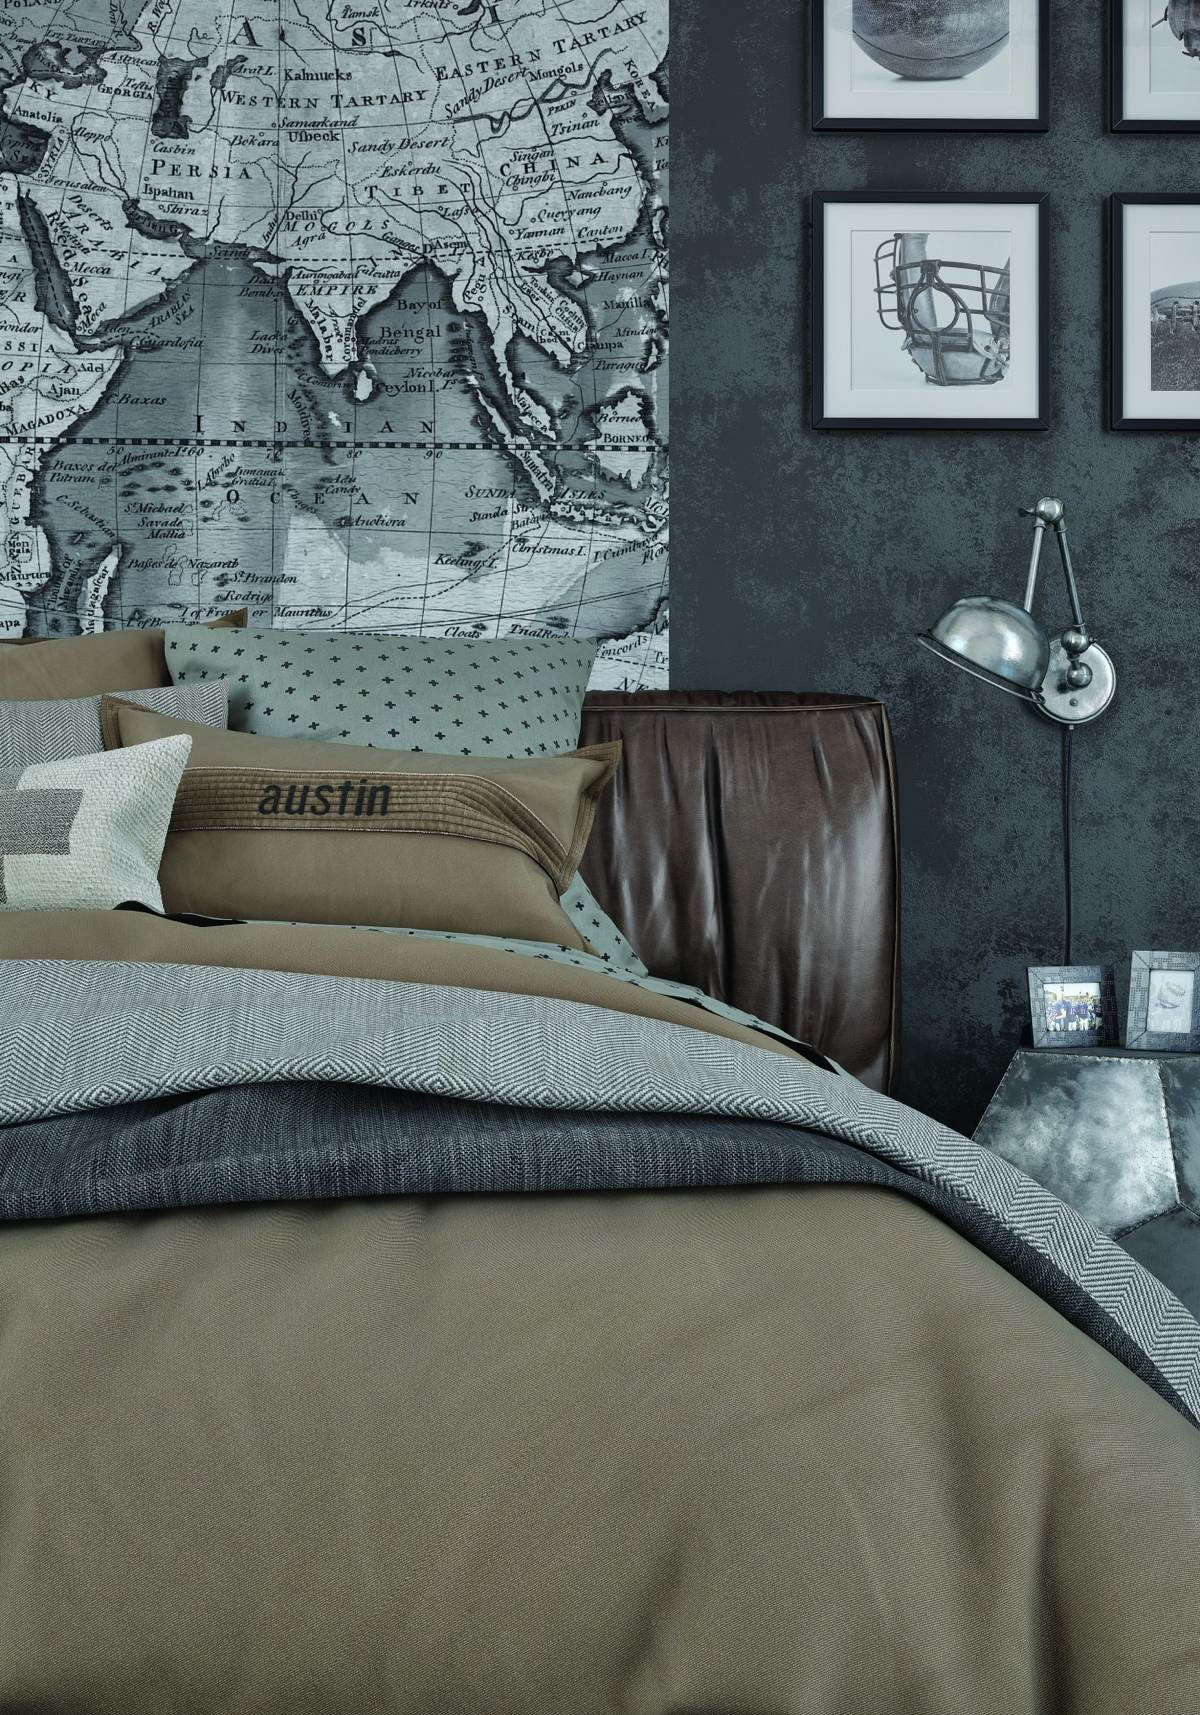 Gorgeous Travel Bedroom Inspiration - Exposed concrete walls ideas inspiration